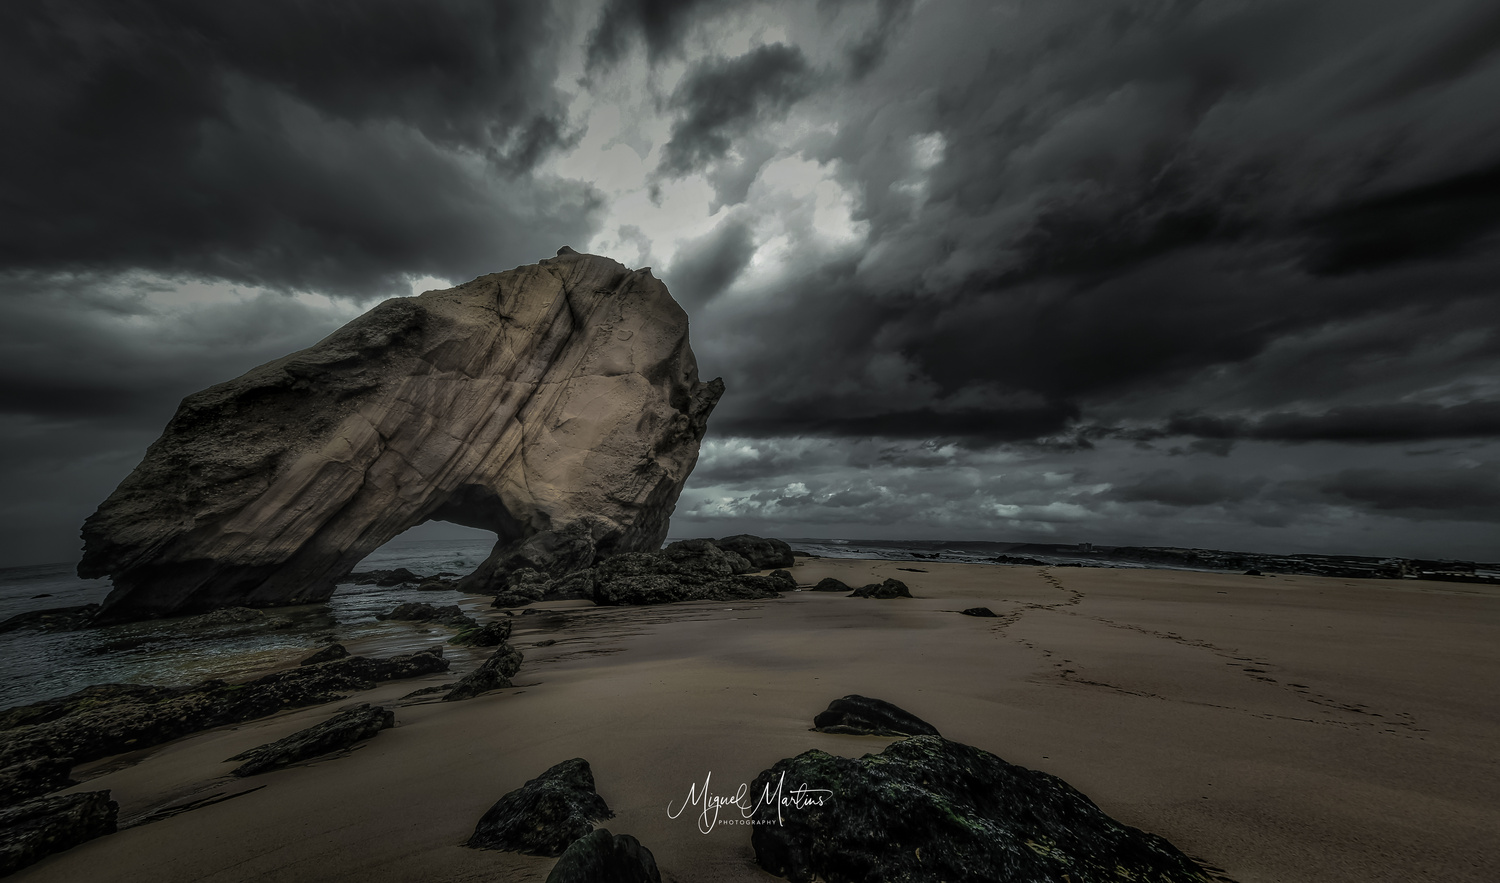 Guincho by Miguel Martins